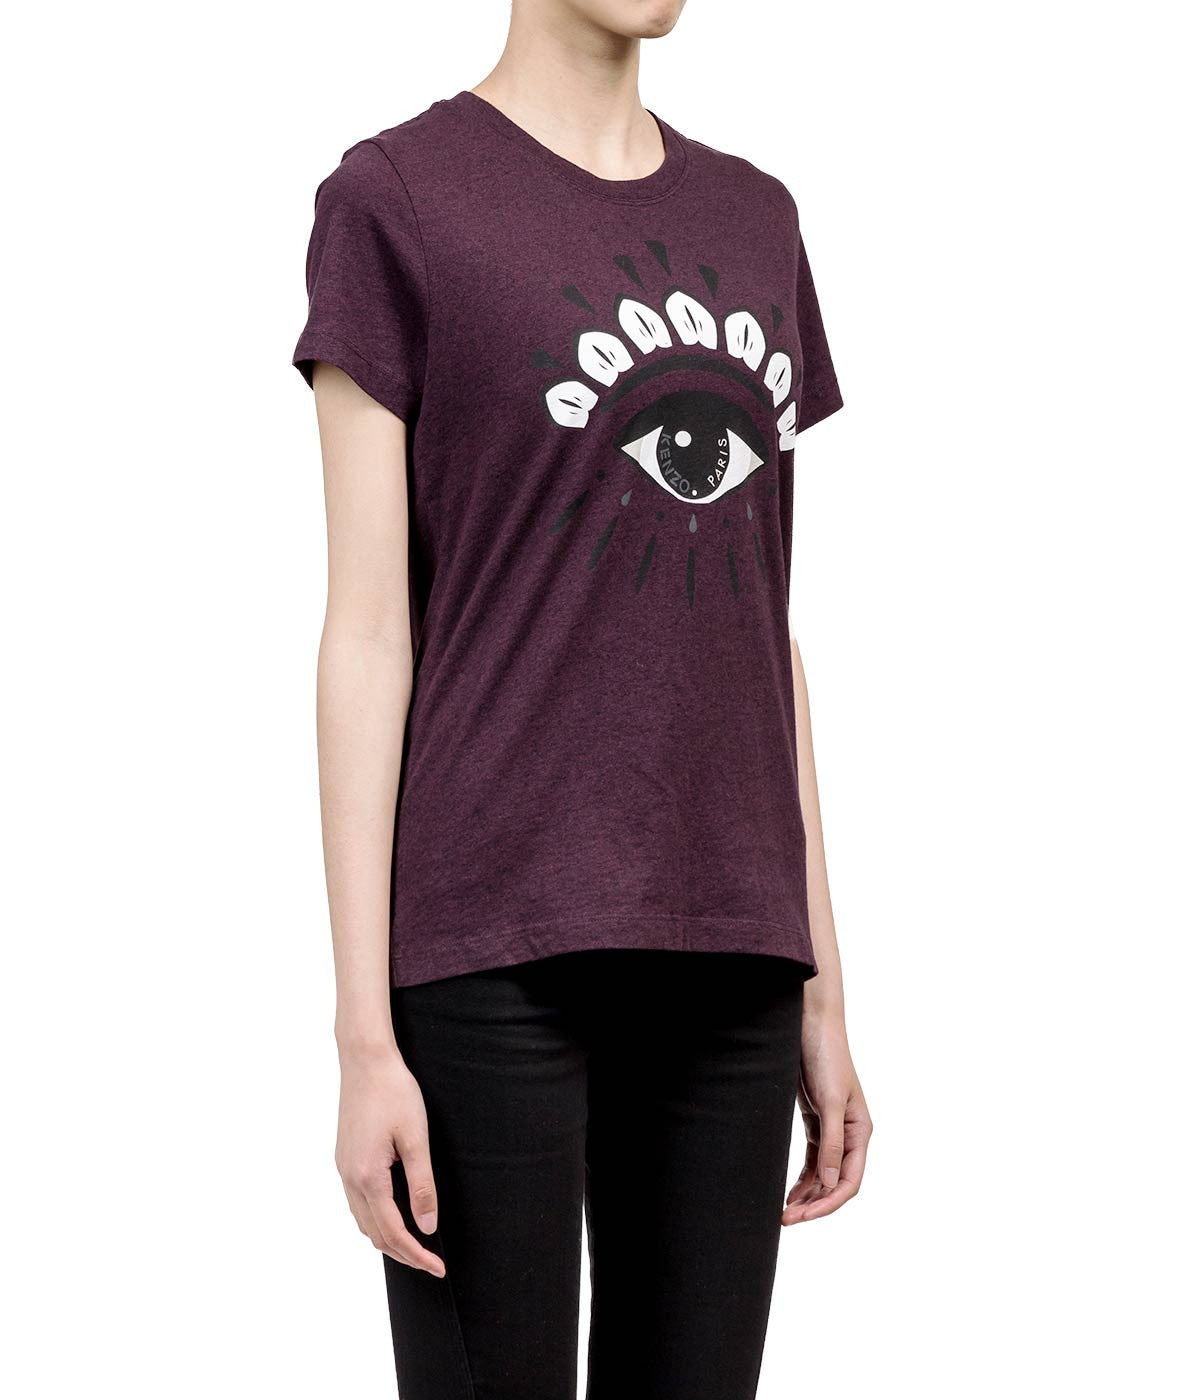 Plum purple Eye Print T-shirt